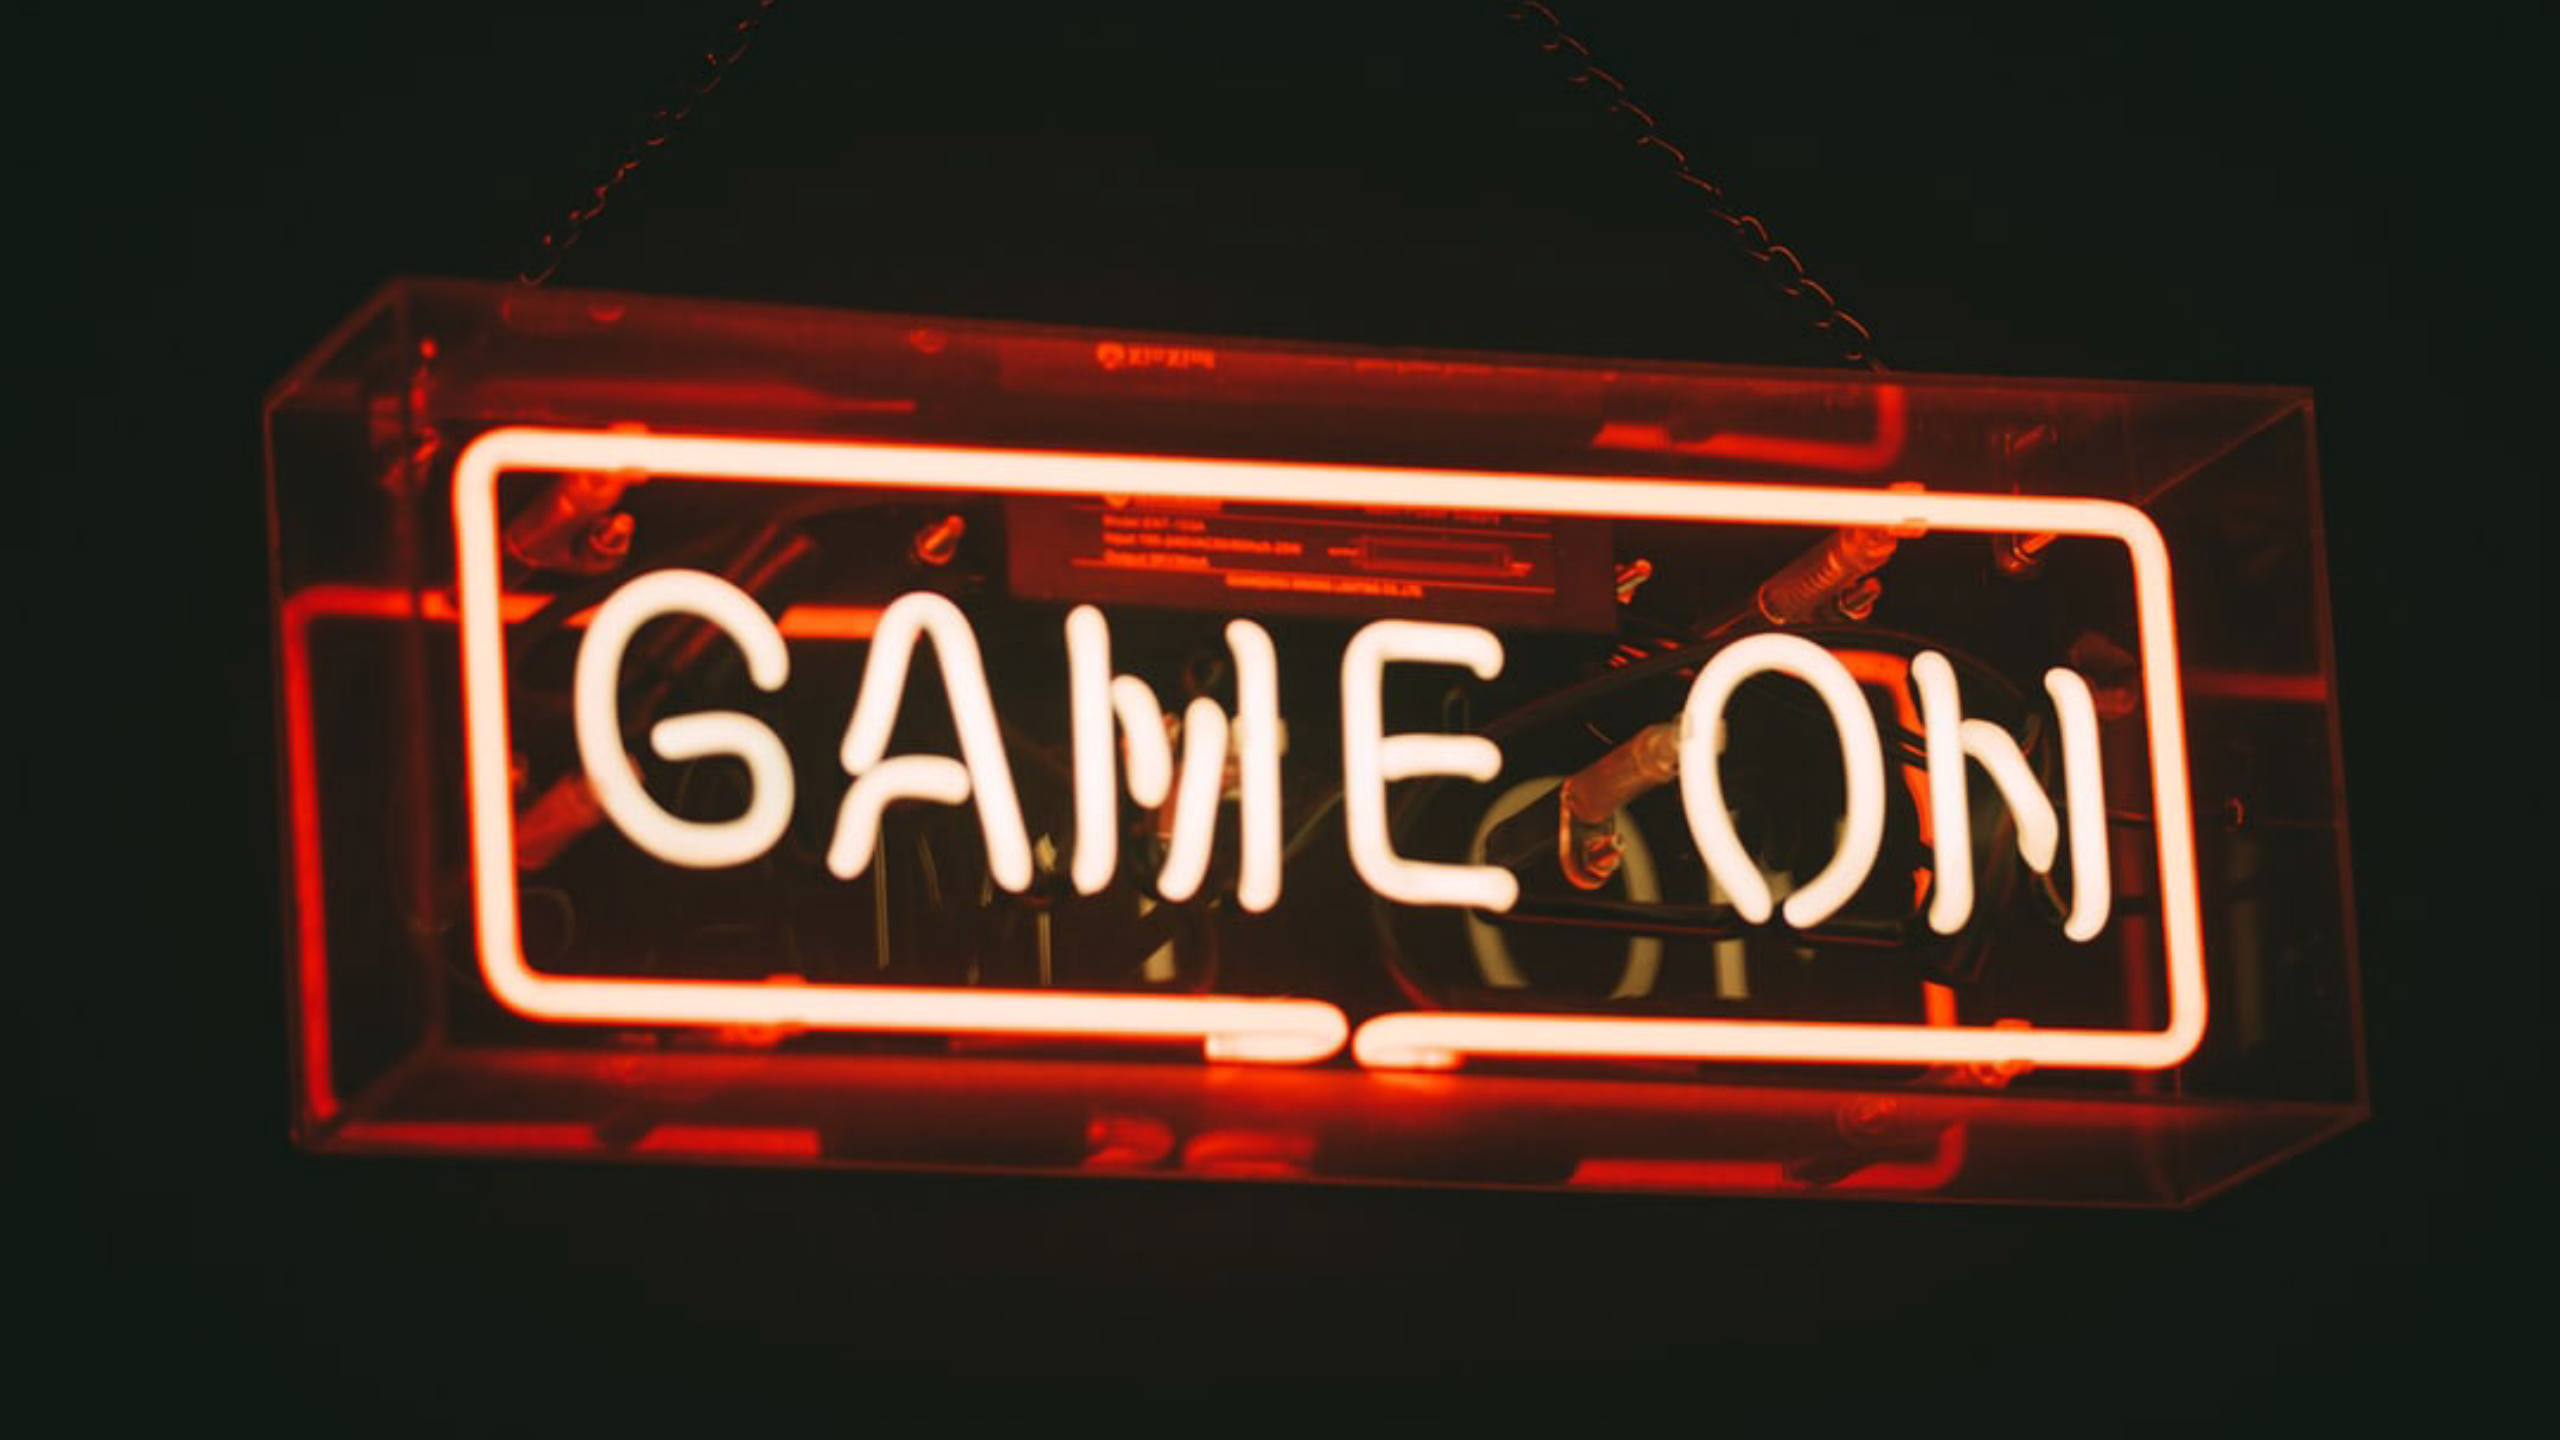 Neon sign reading 'Game on'